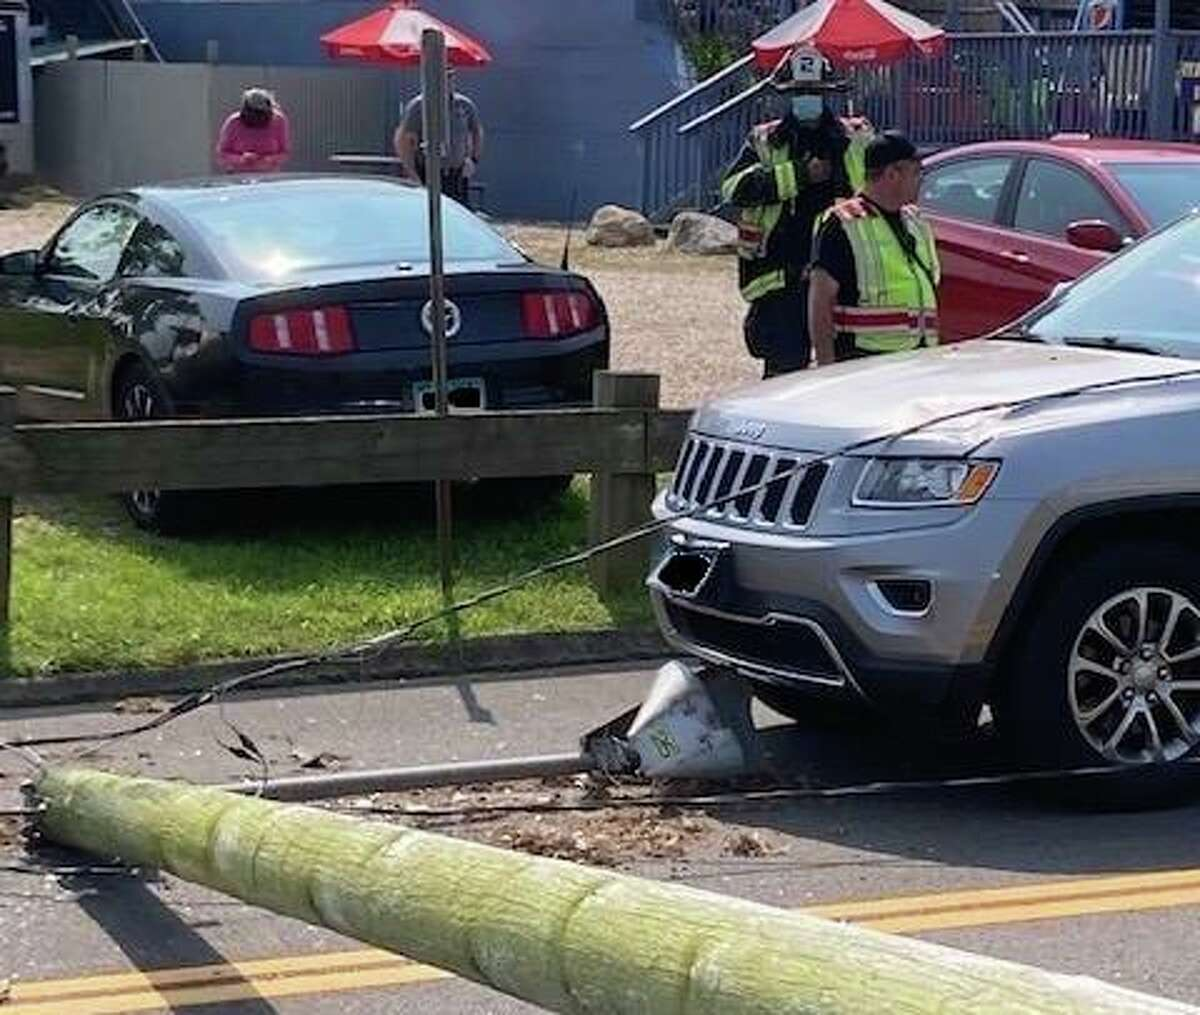 Shortly after 1 p.m. Sunday, Sept. 12, 2021, fire units responded to a report of a utility pole with wires down on a vehicle with a person inside the vehicle at Ferry Park, near the access road to the ferry, in Rocky Hill, Conn., fire officials said. Edits to the license plates on vehicles in this photo were not made by Hearst Connecticut Media.